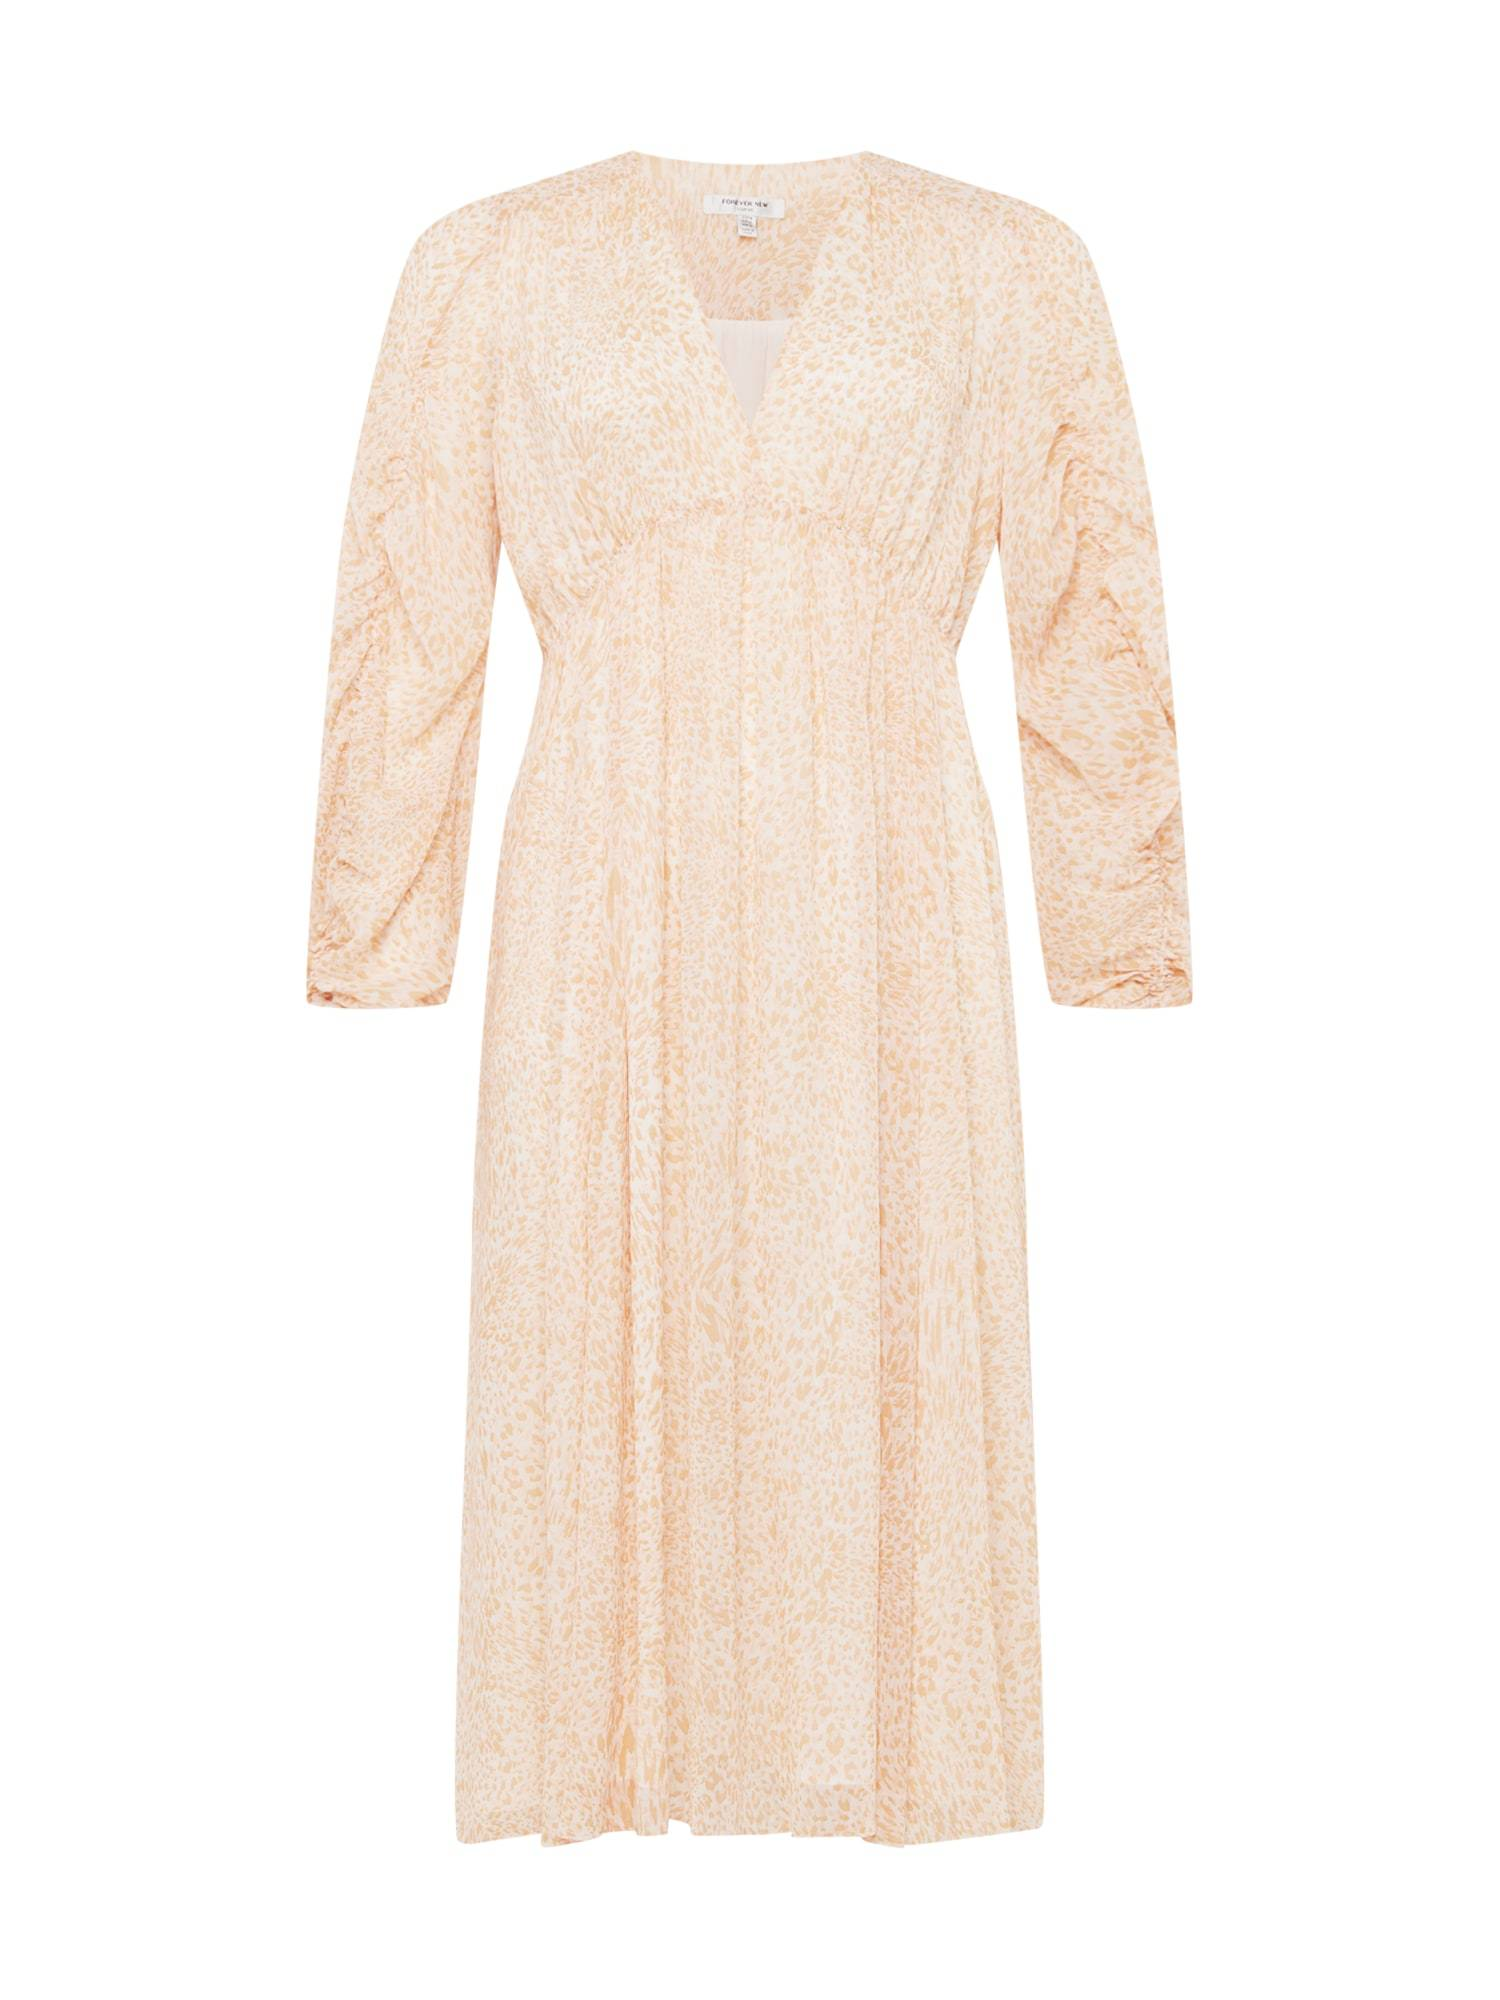 Forever New Curve Robe  - Beige - Taille: 22 - female